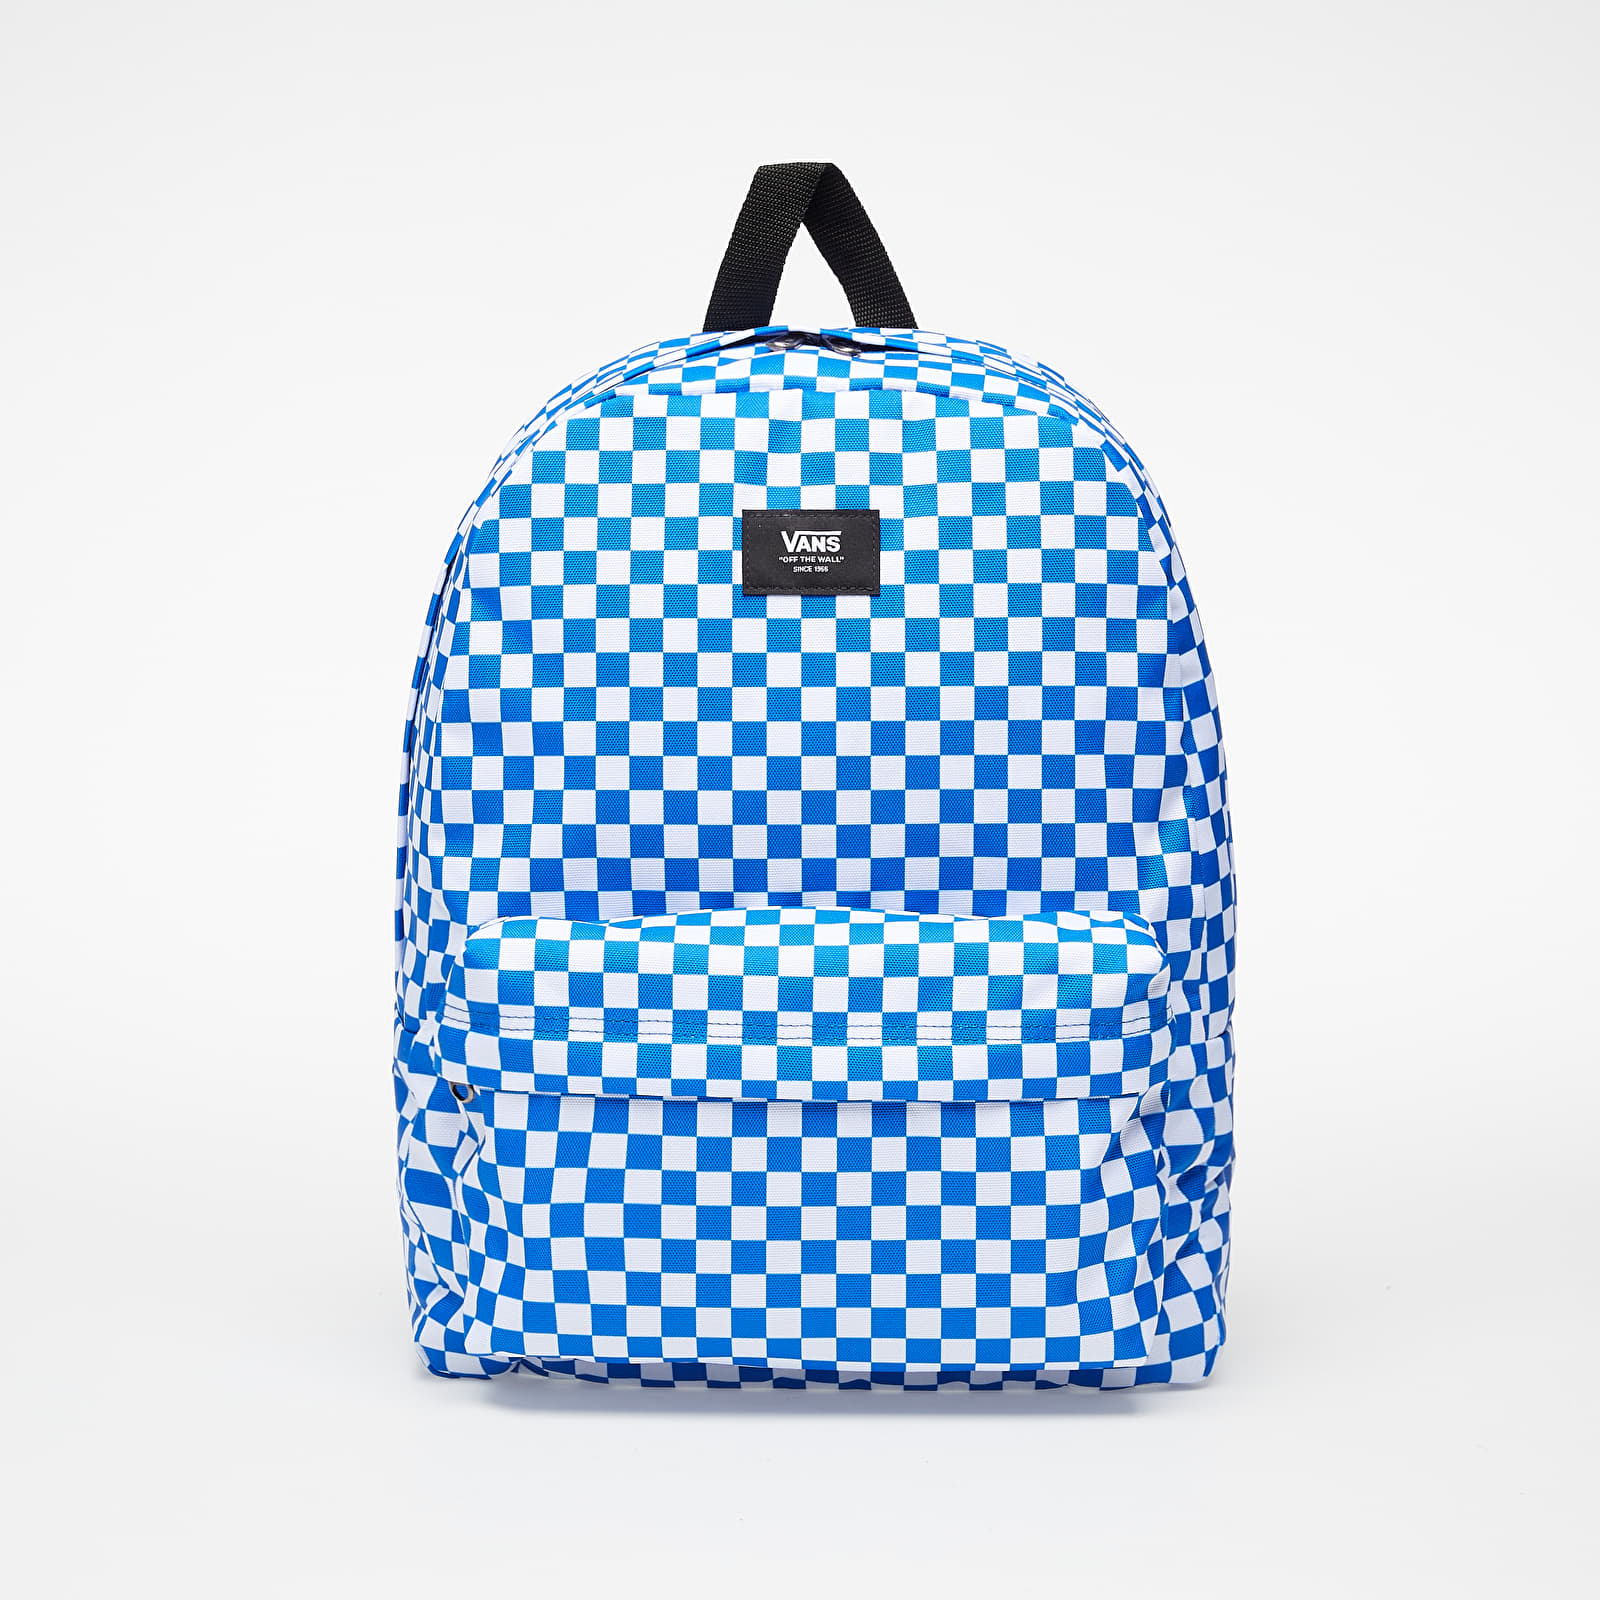 Ruksaci Vans Old Skool III Backpack Victoria Blue C